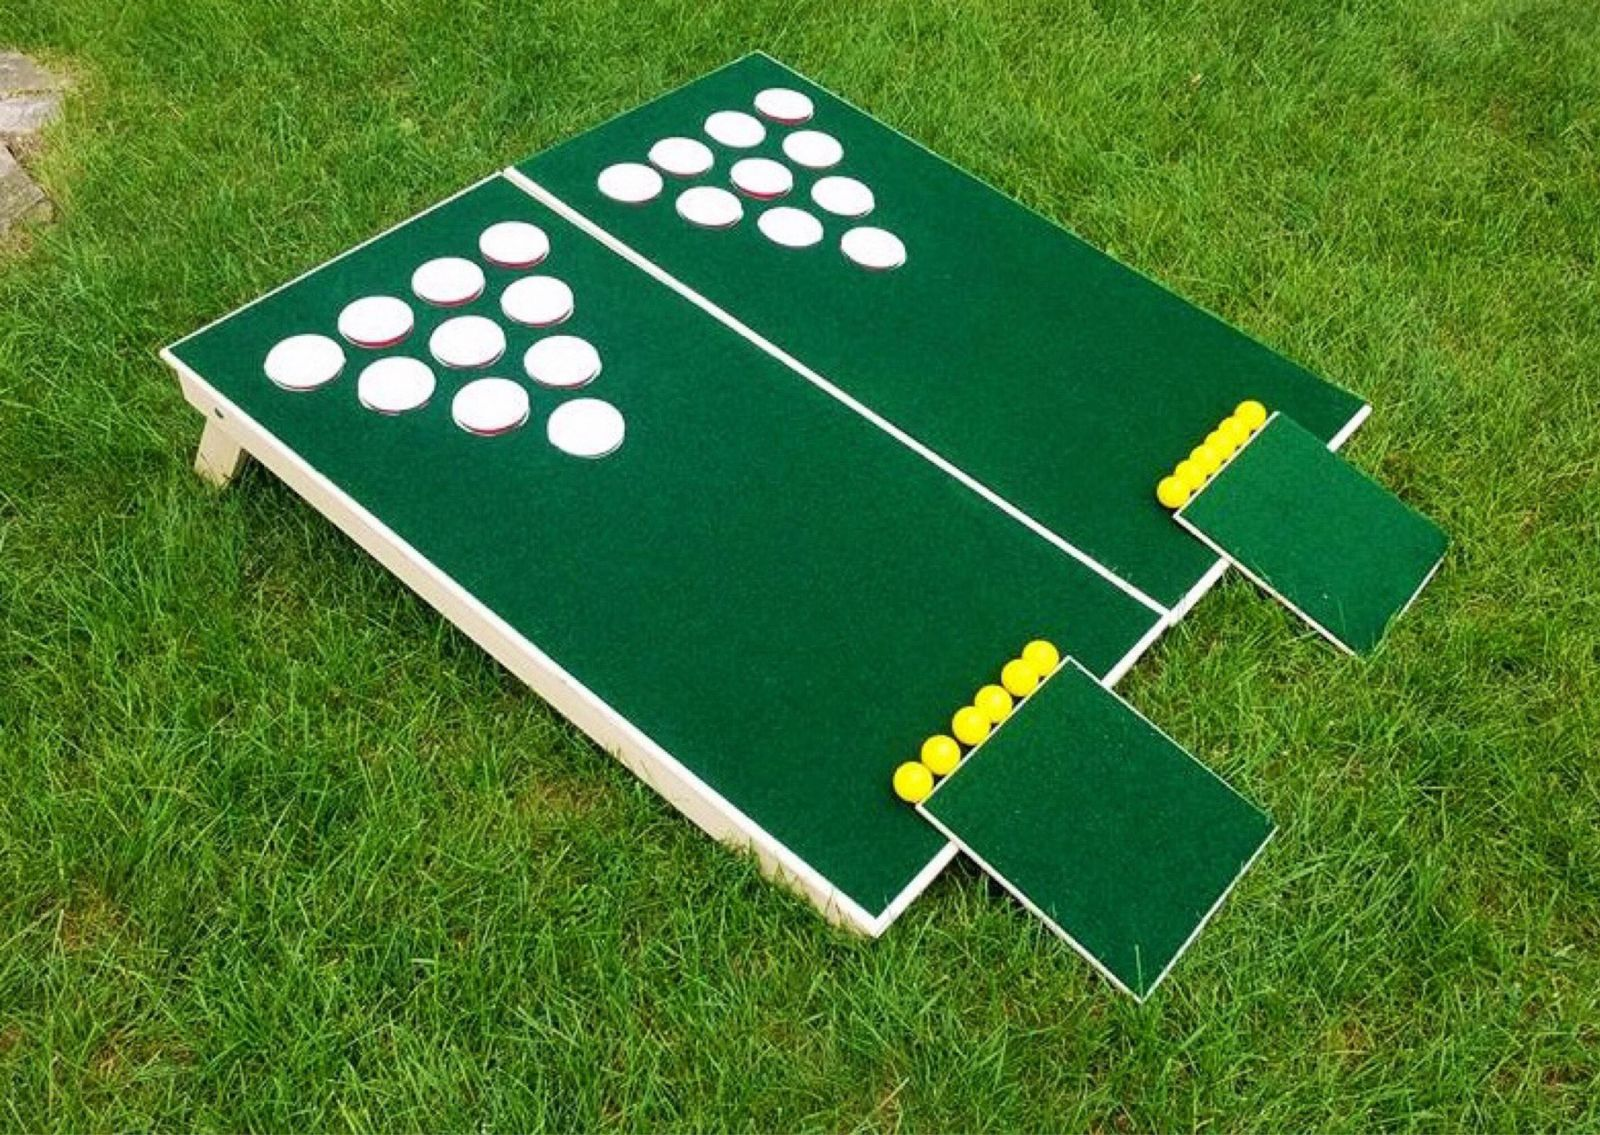 Beer Pong Golf - rent these playing boards for your next tailgating event from Carolina Fun Factory